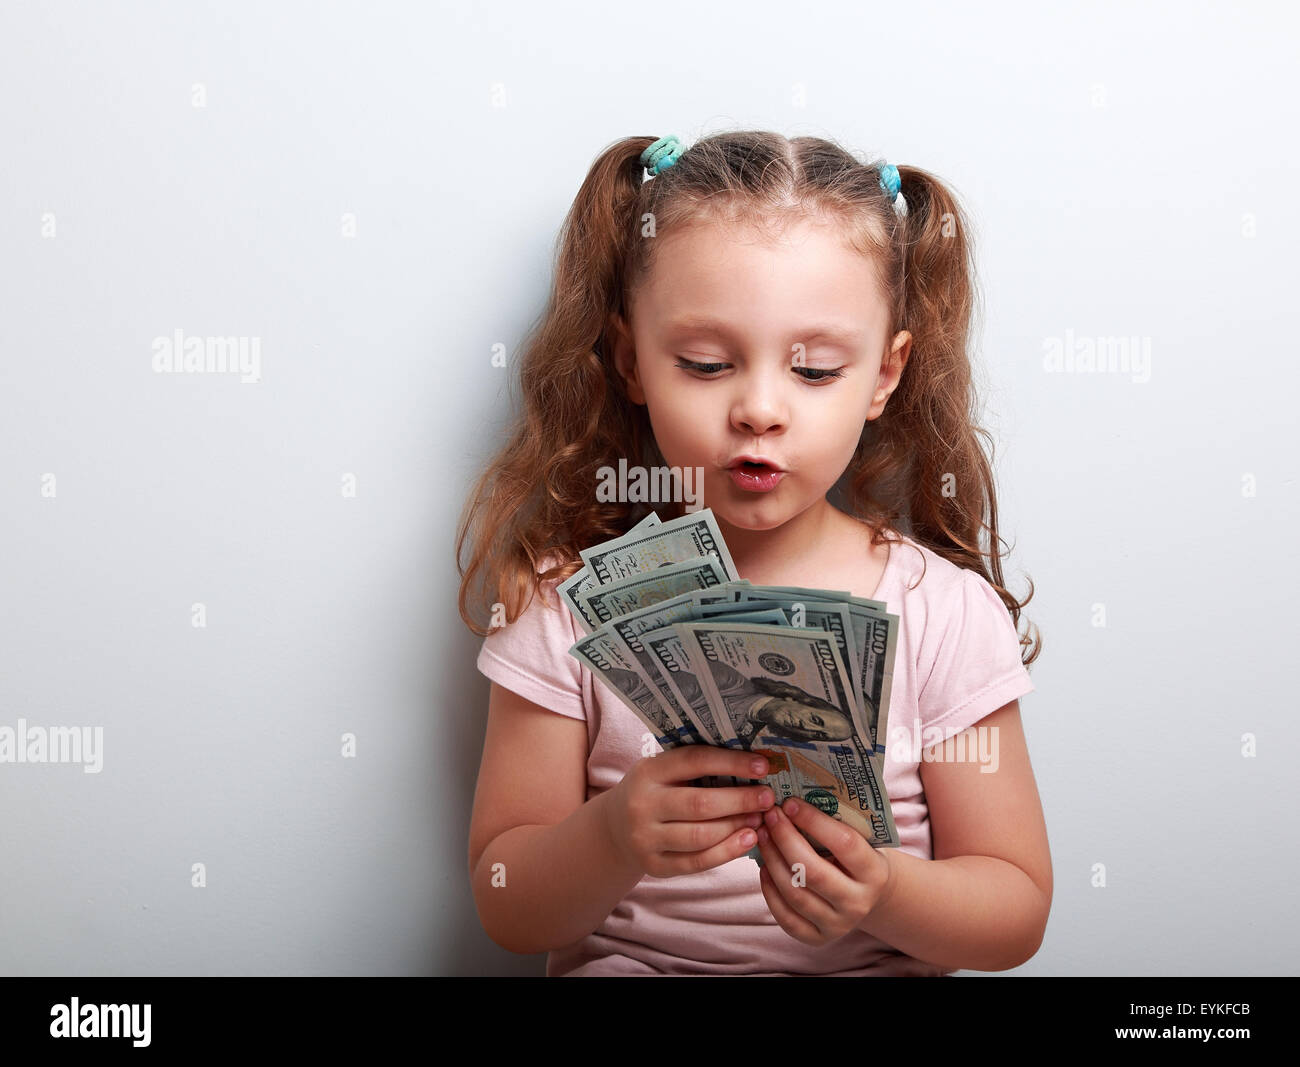 Fun grimacing kid girl looking and counting money in the hands on blue background - Stock Image